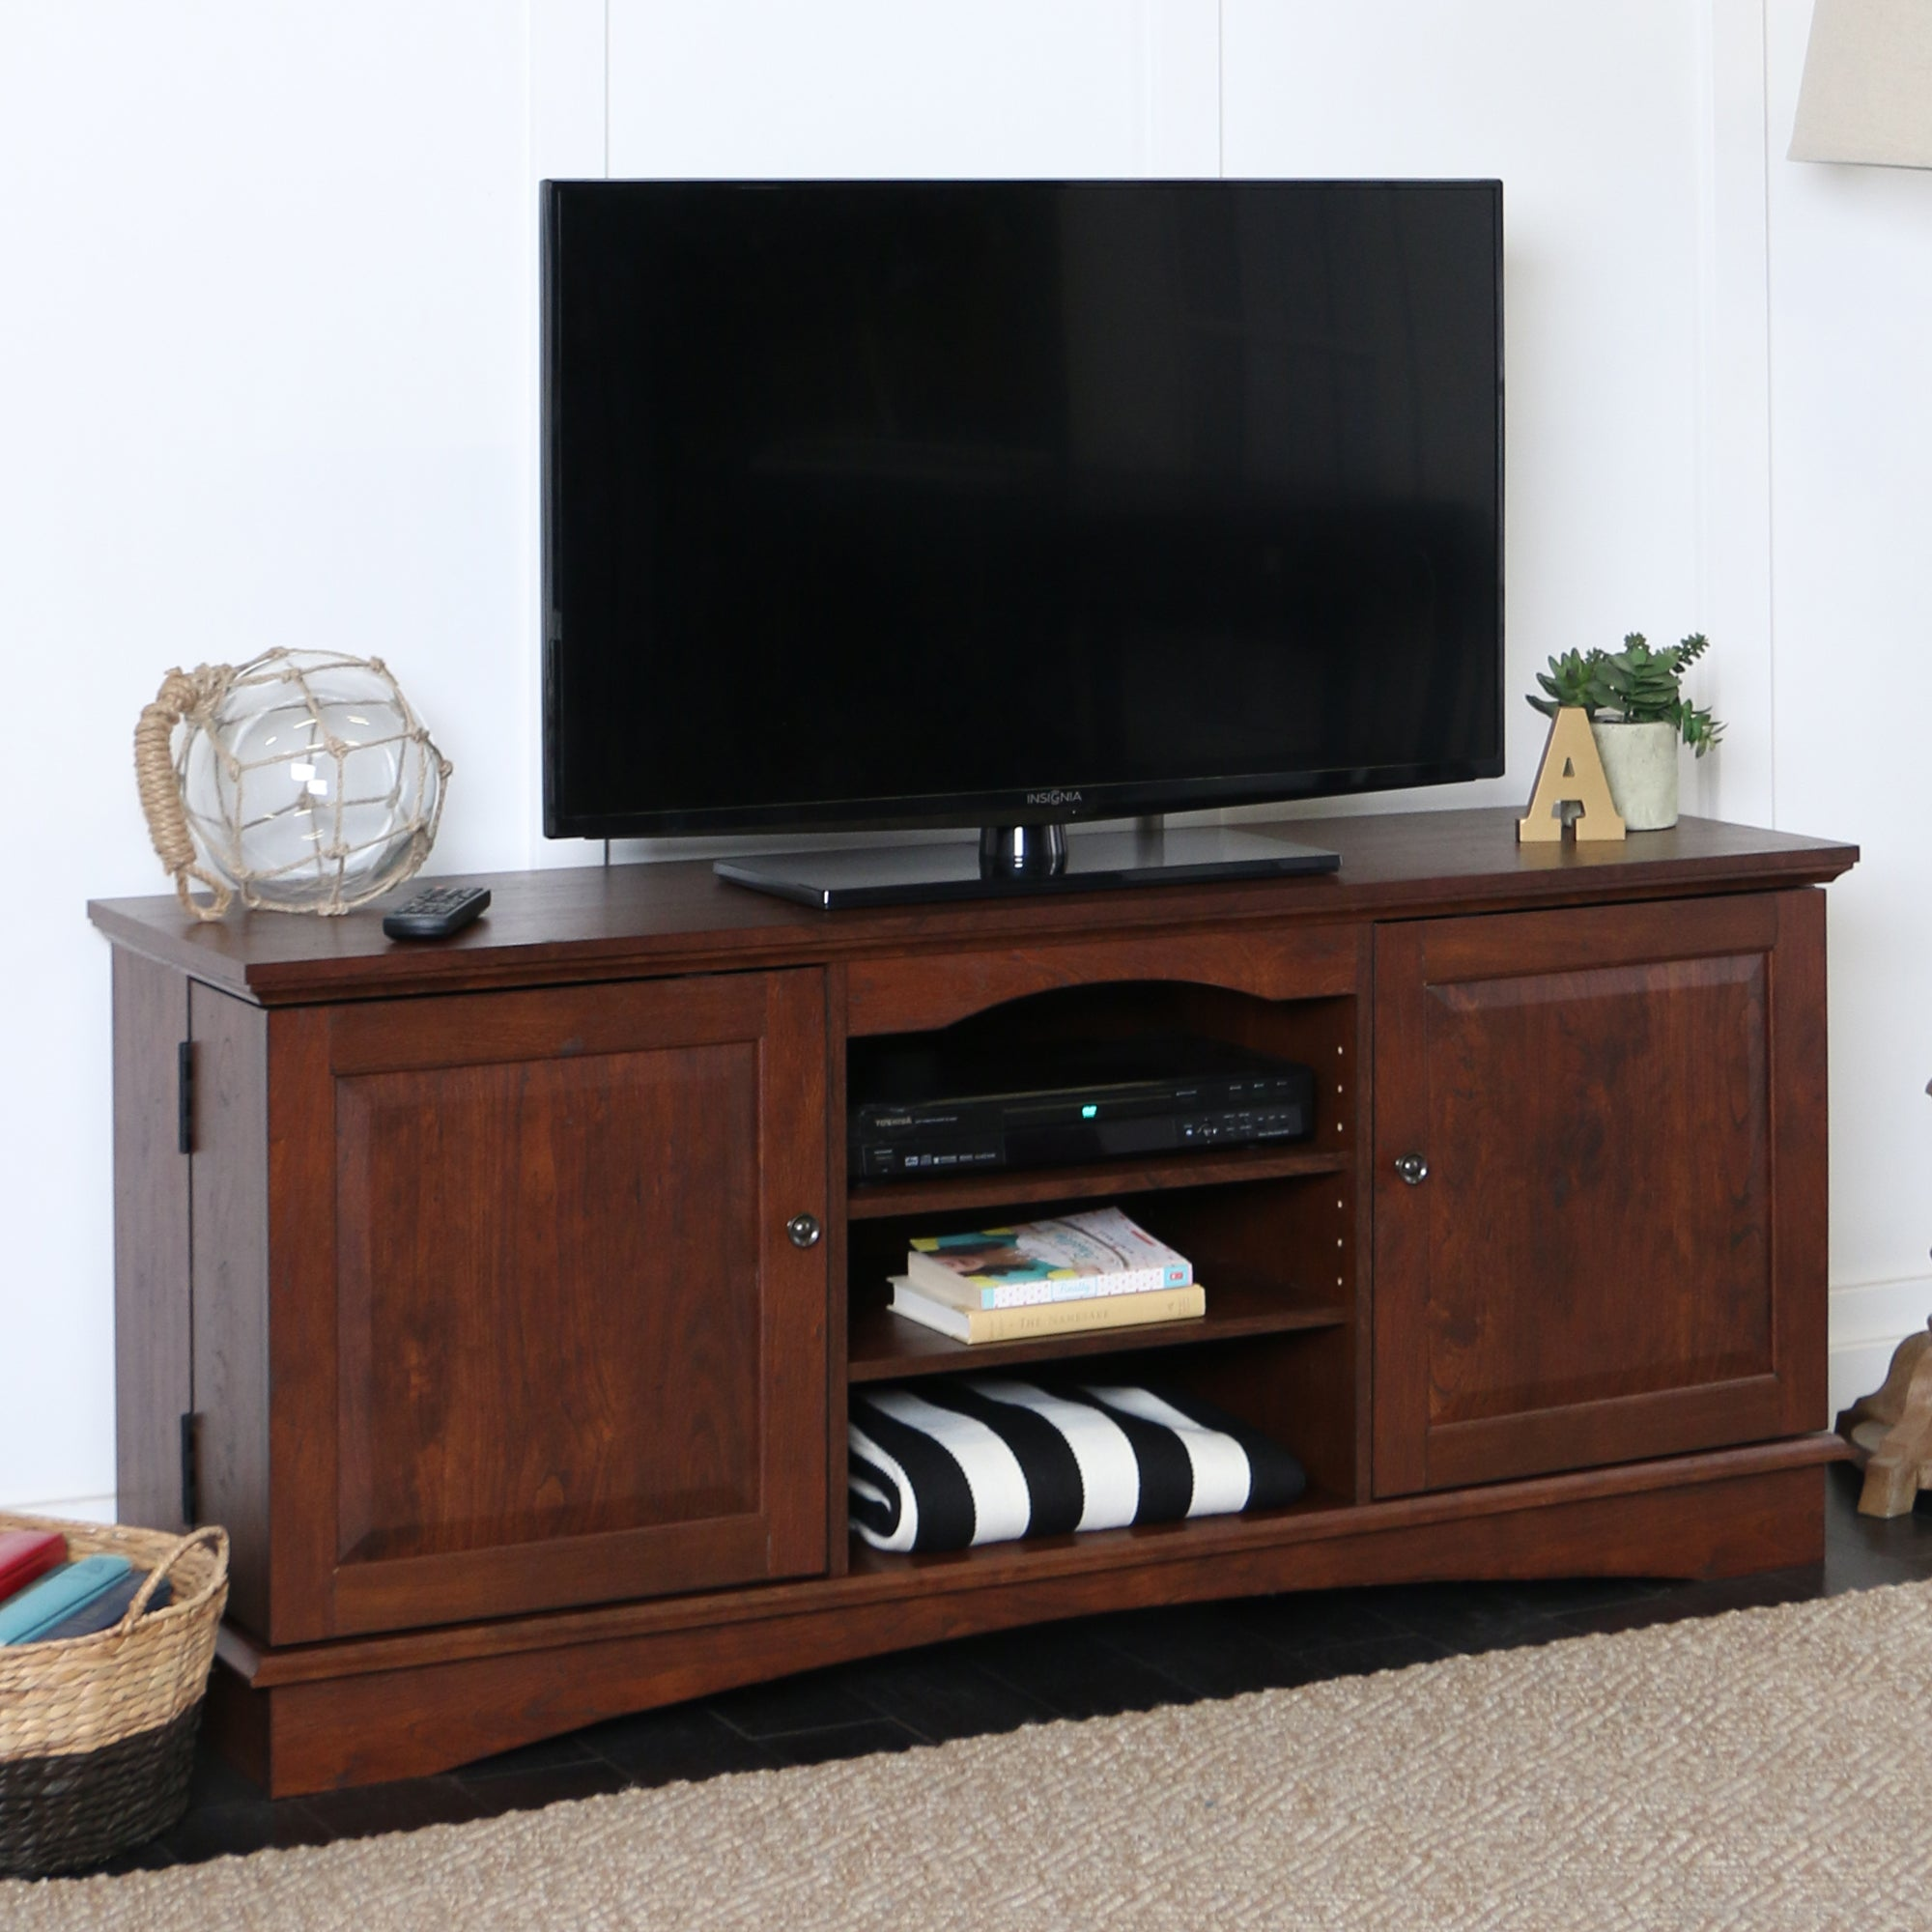 "60"" Wood TV Media Stand Storage Console - Brown"